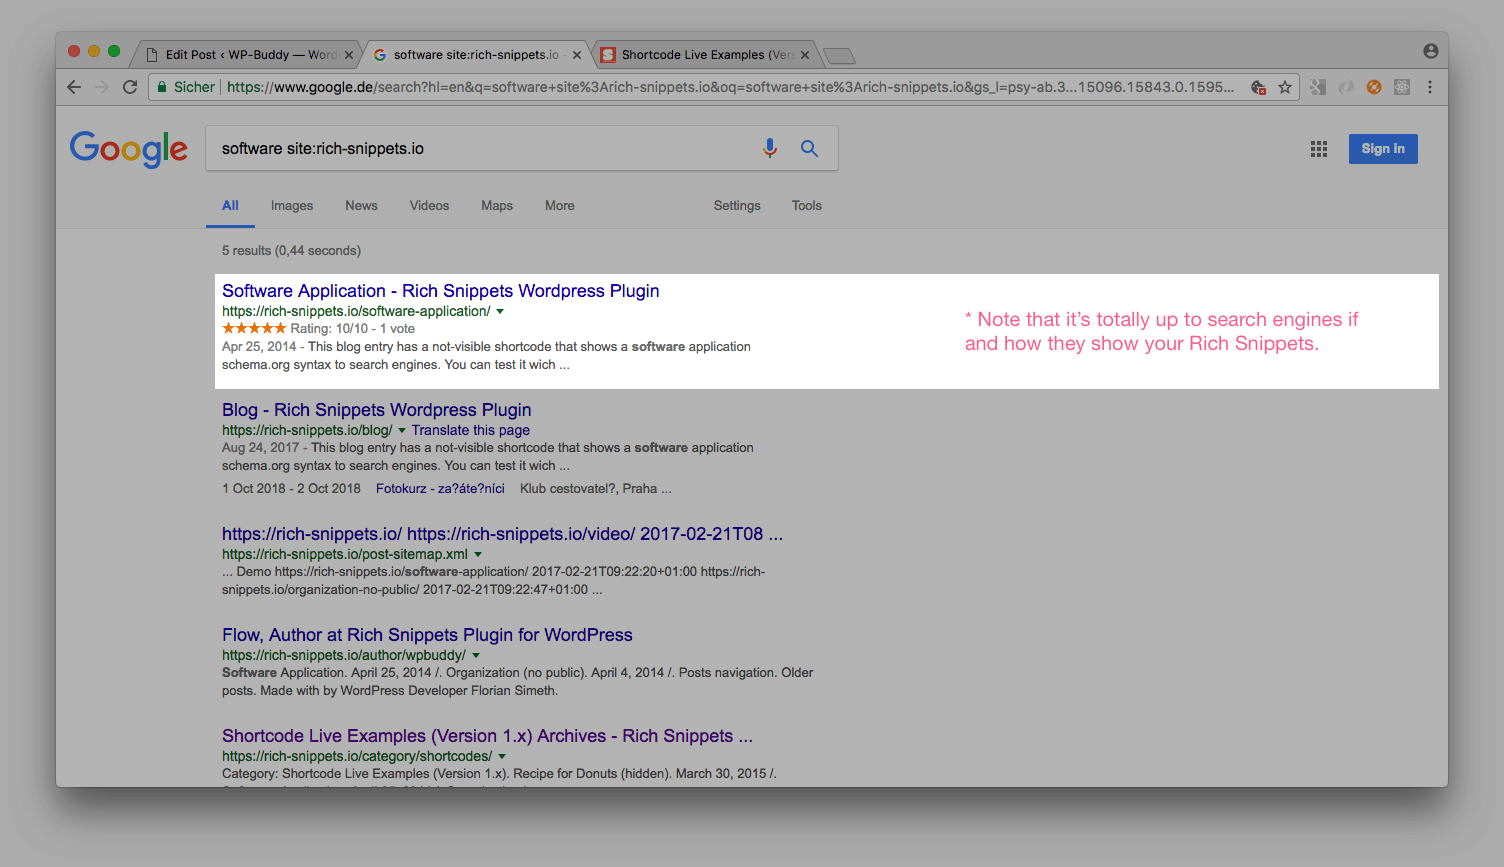 1 activationpng 10 overwrite global snippets ratingspng 11 search result recipepng 12 search result helppng 13 search result productpng